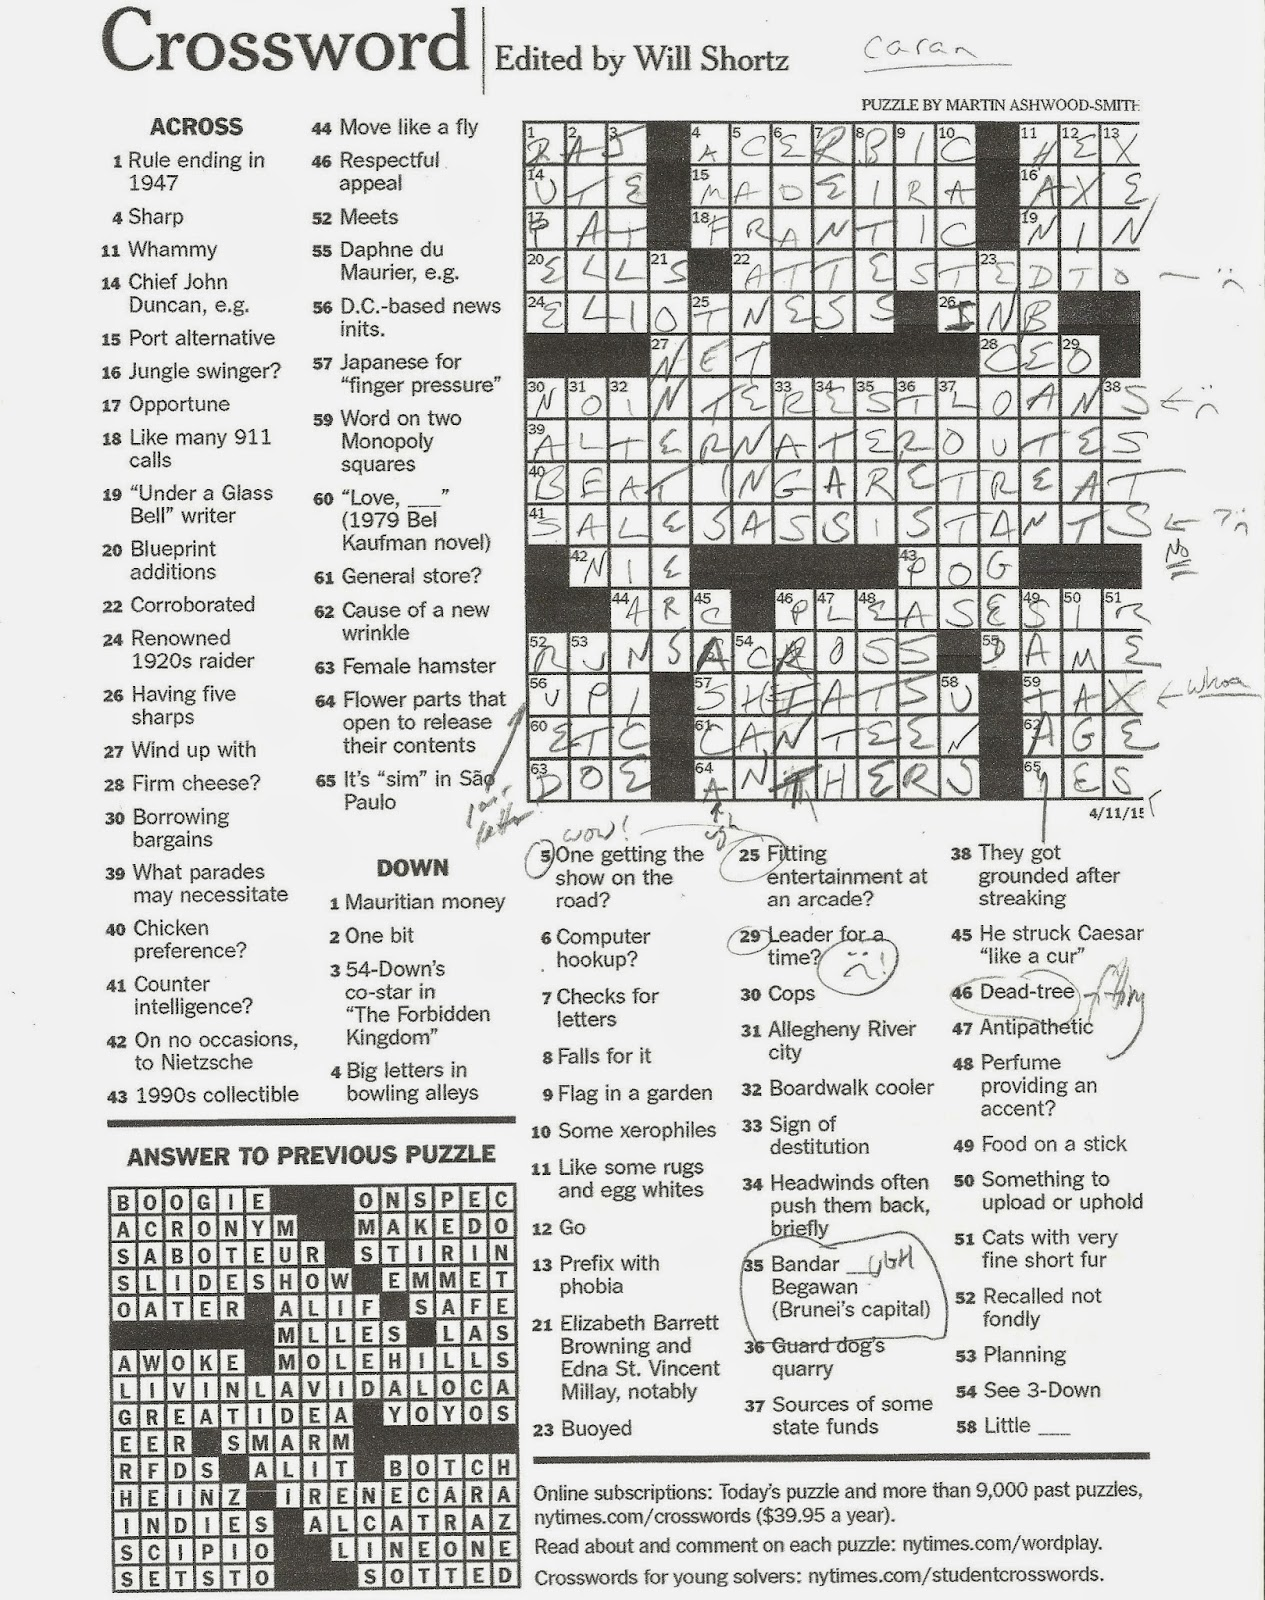 Rex Parker Does The Nyt Crossword Puzzle Japanese For Finger Pressure Sat 4 11 15 He Struck